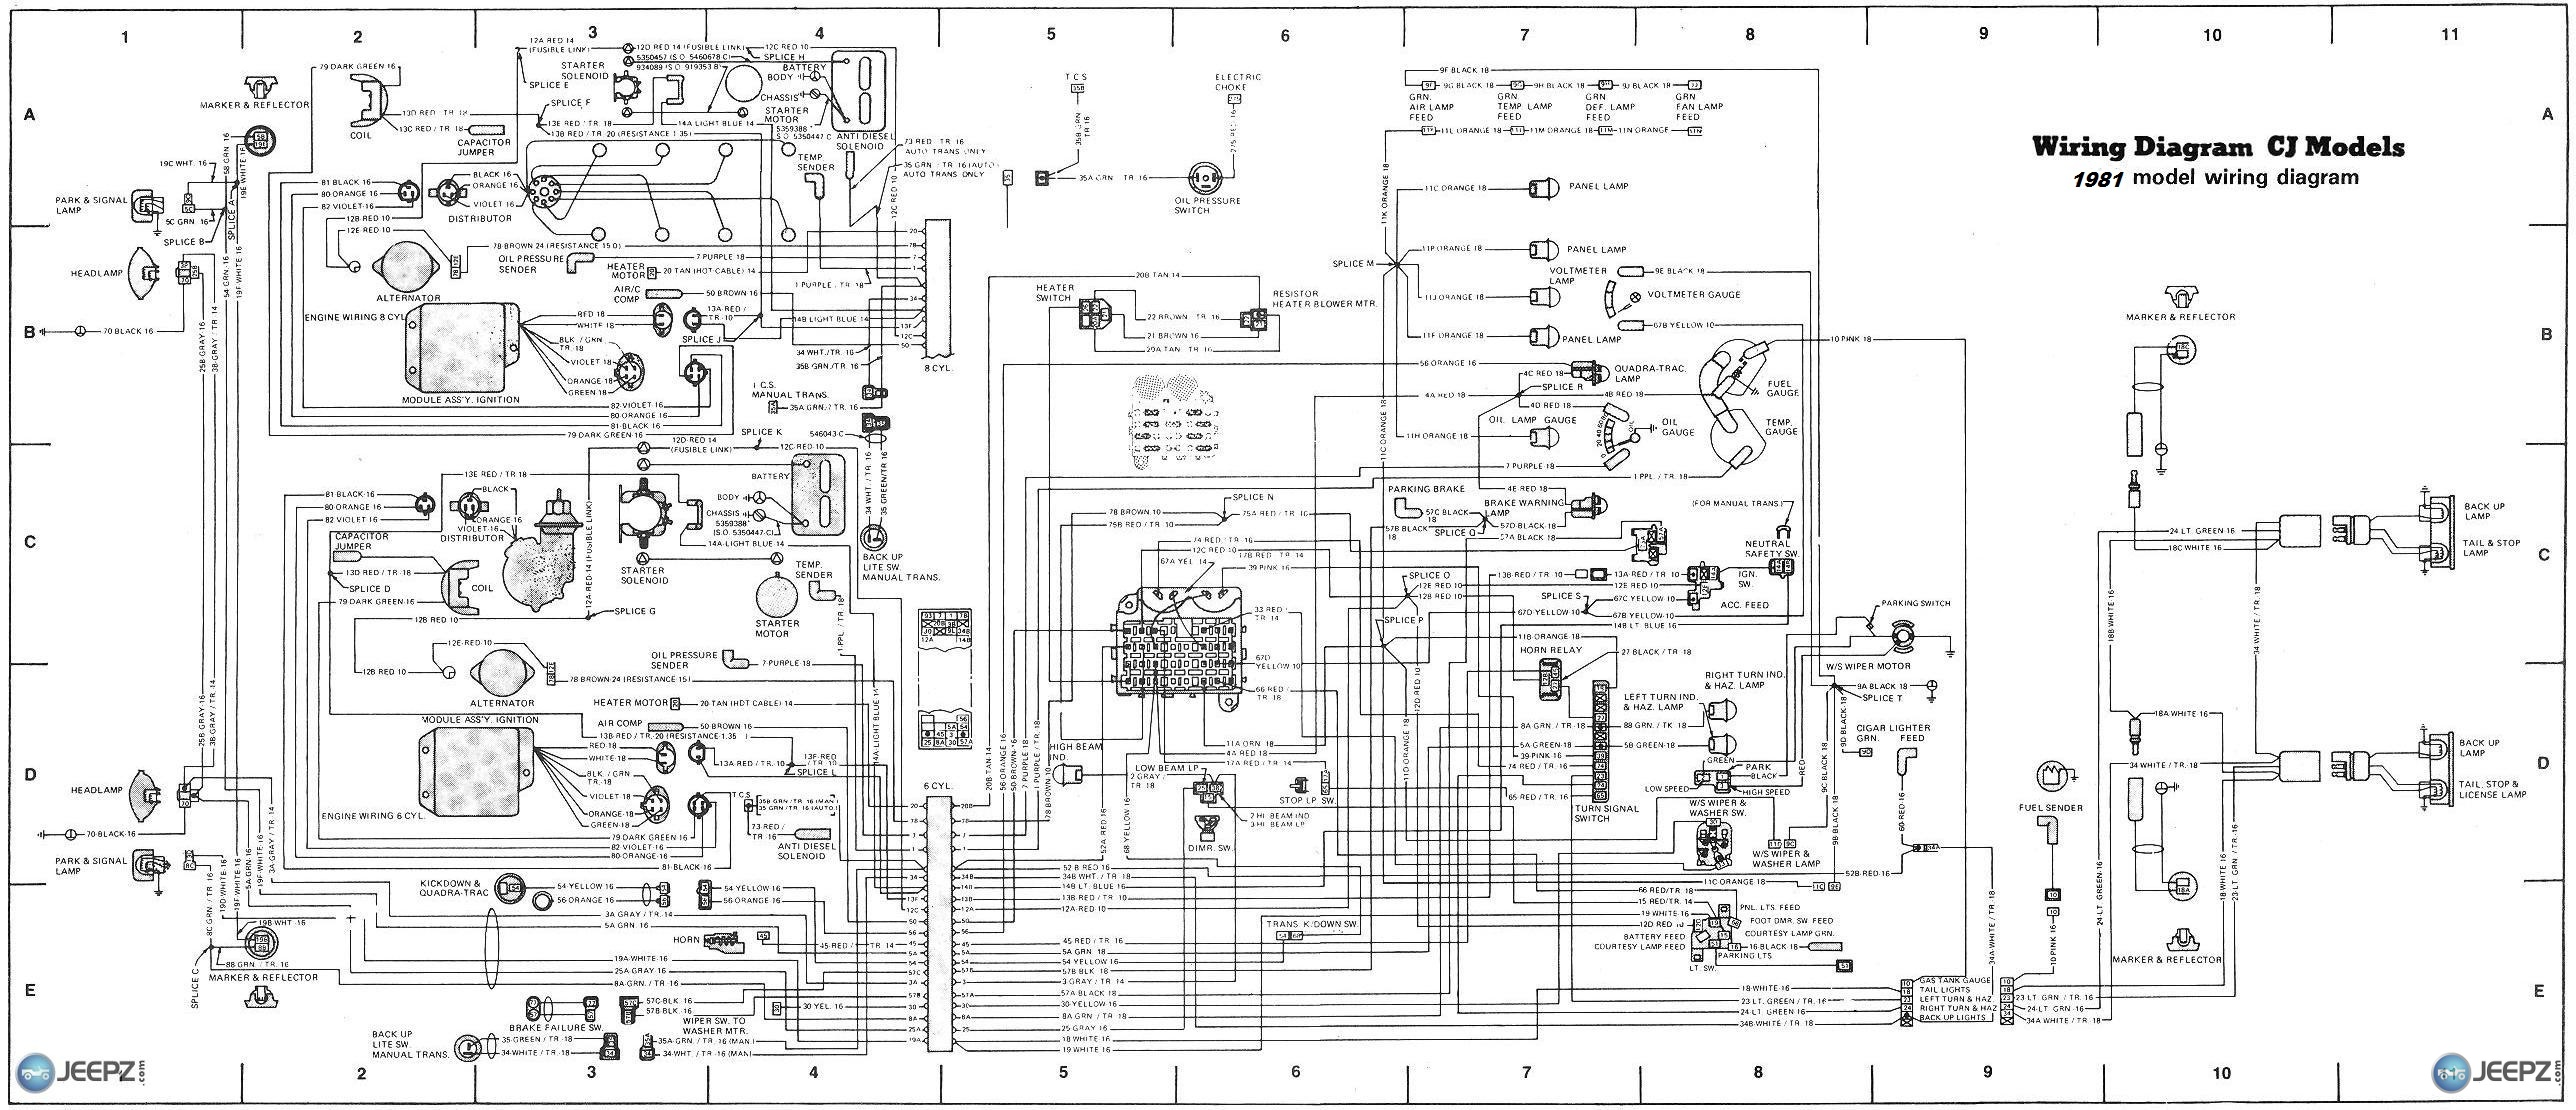 cj 7 wire diagram 05 jeep wrangler speaker wiring diagram